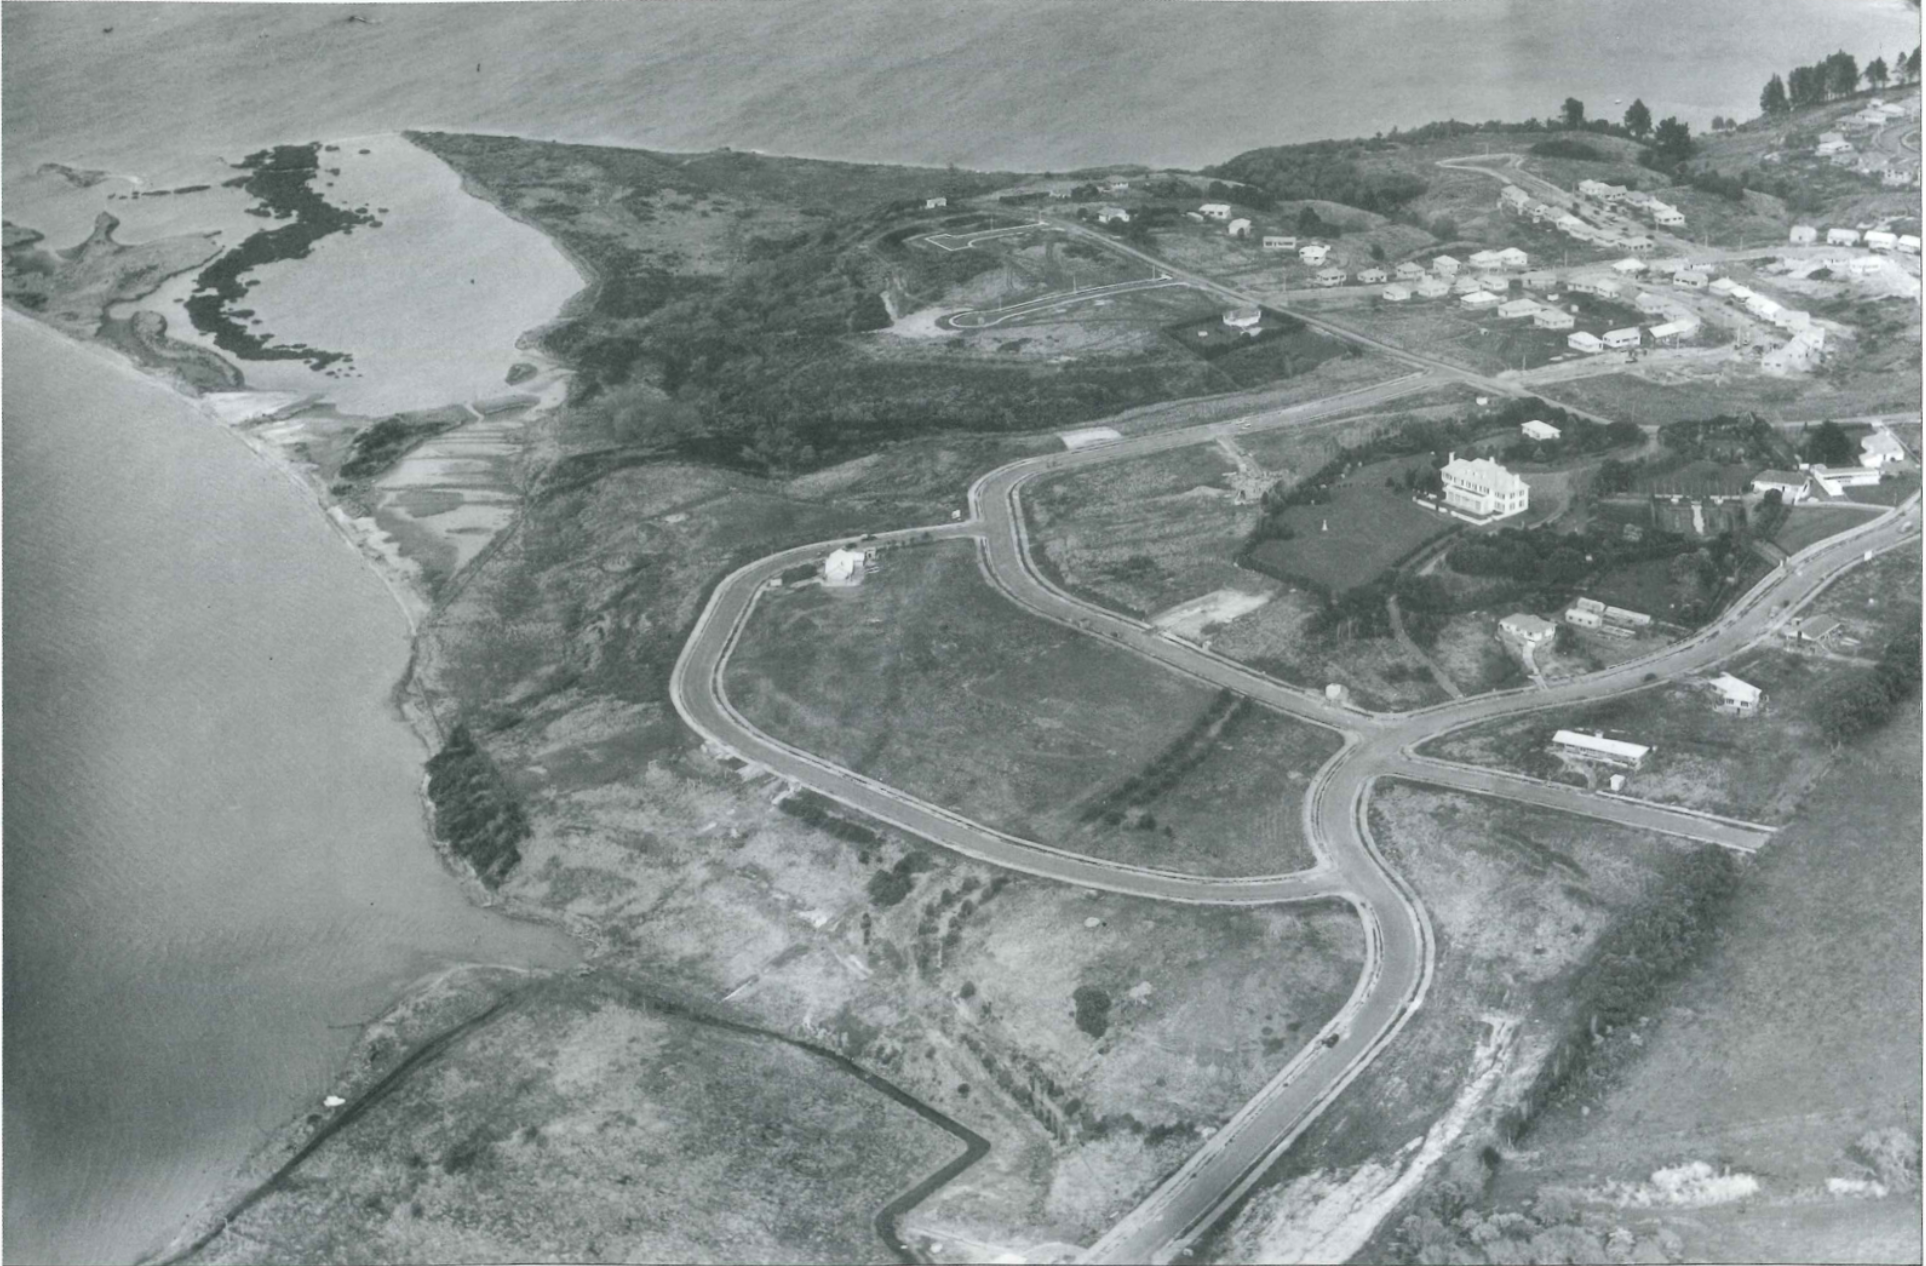 Beverley Hills subdivision in foreground, Calder and California Places in centre background, Sandspit to the left (1956. Air Logistics Inc.  Whites Aviation)